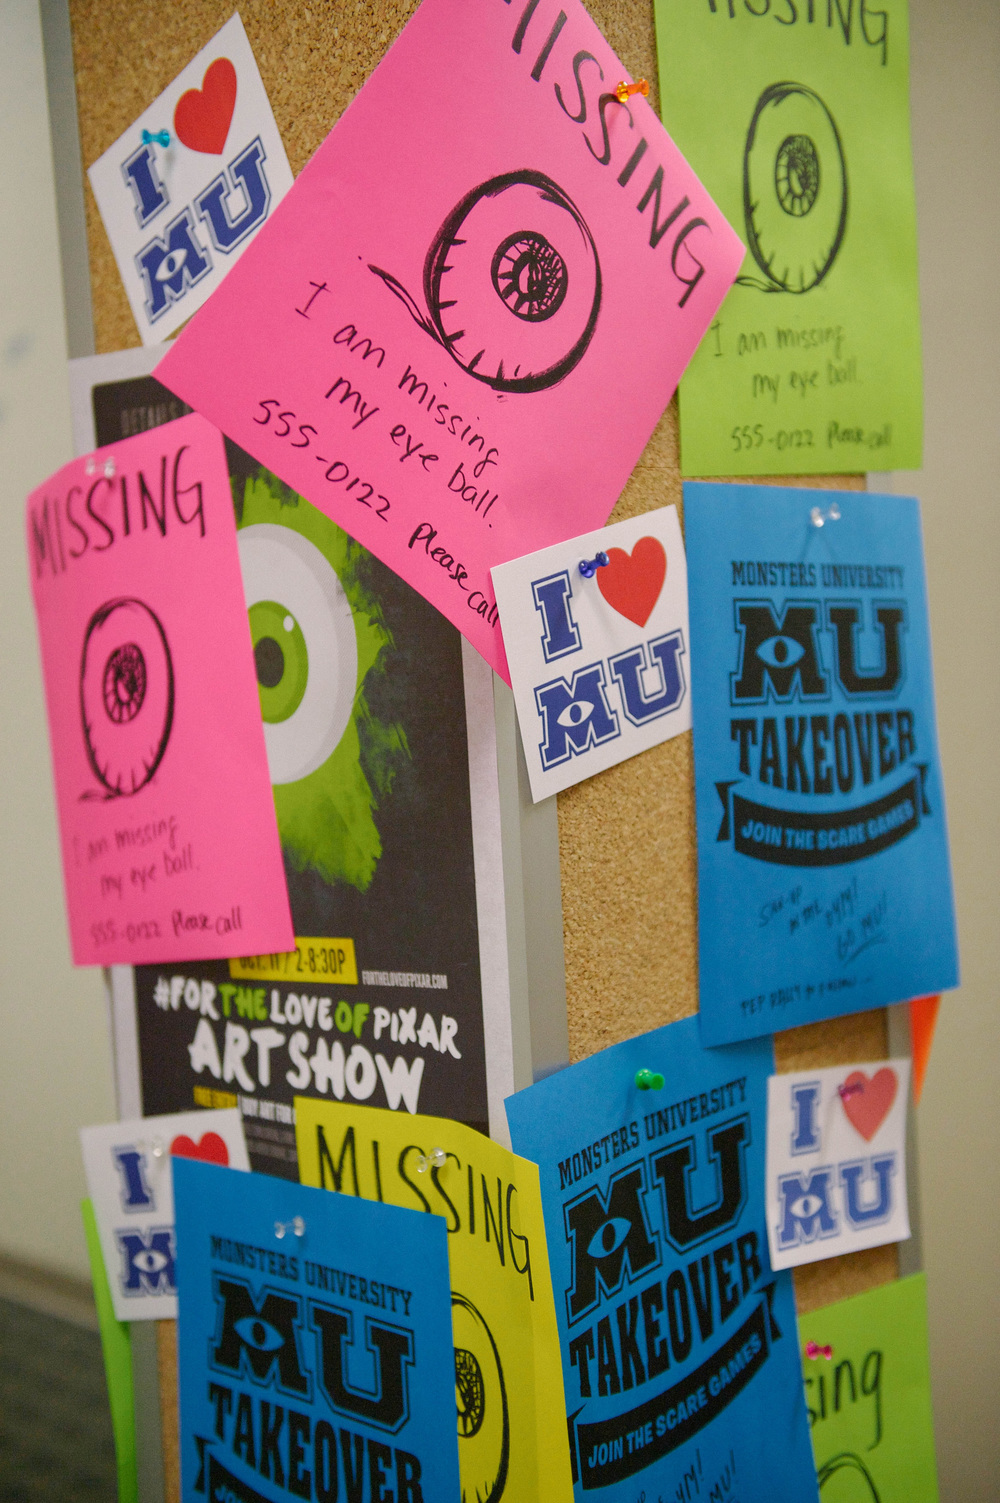 Monsters University event posters. Photo by Lisa Diaz.